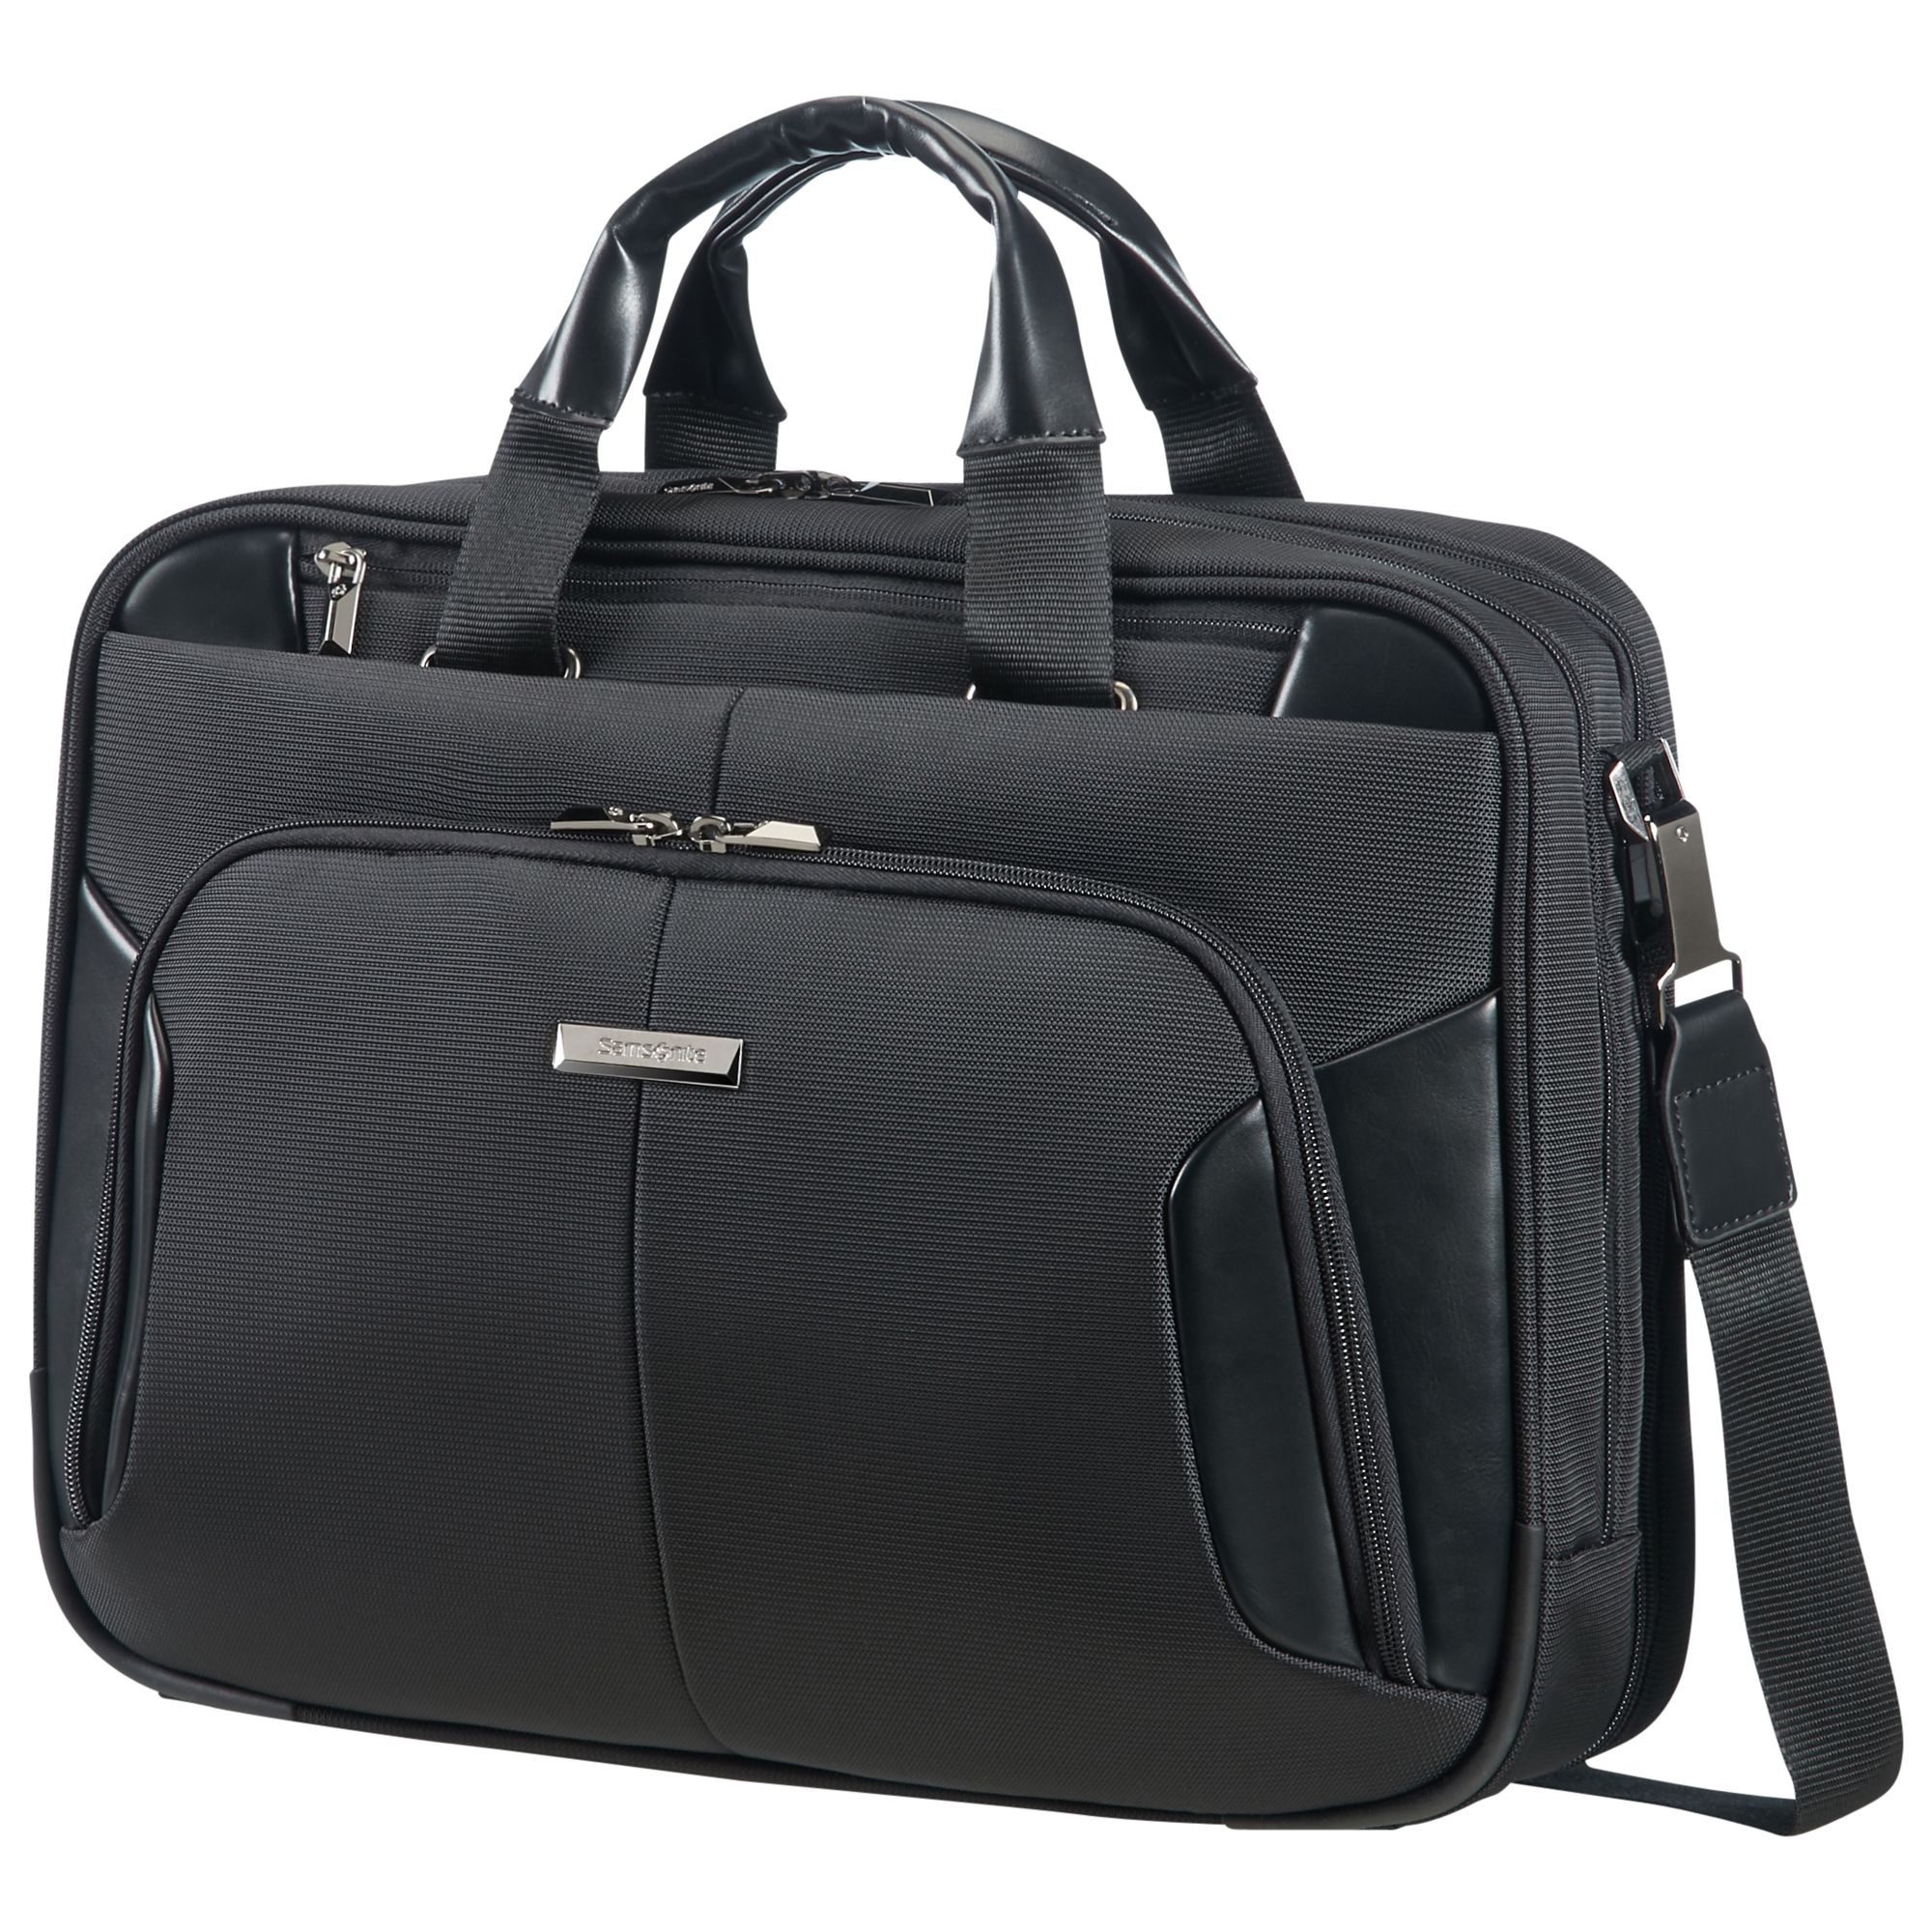 Samsonite Samsonite XBR Bailhandle 2C 15 Laptop Bag